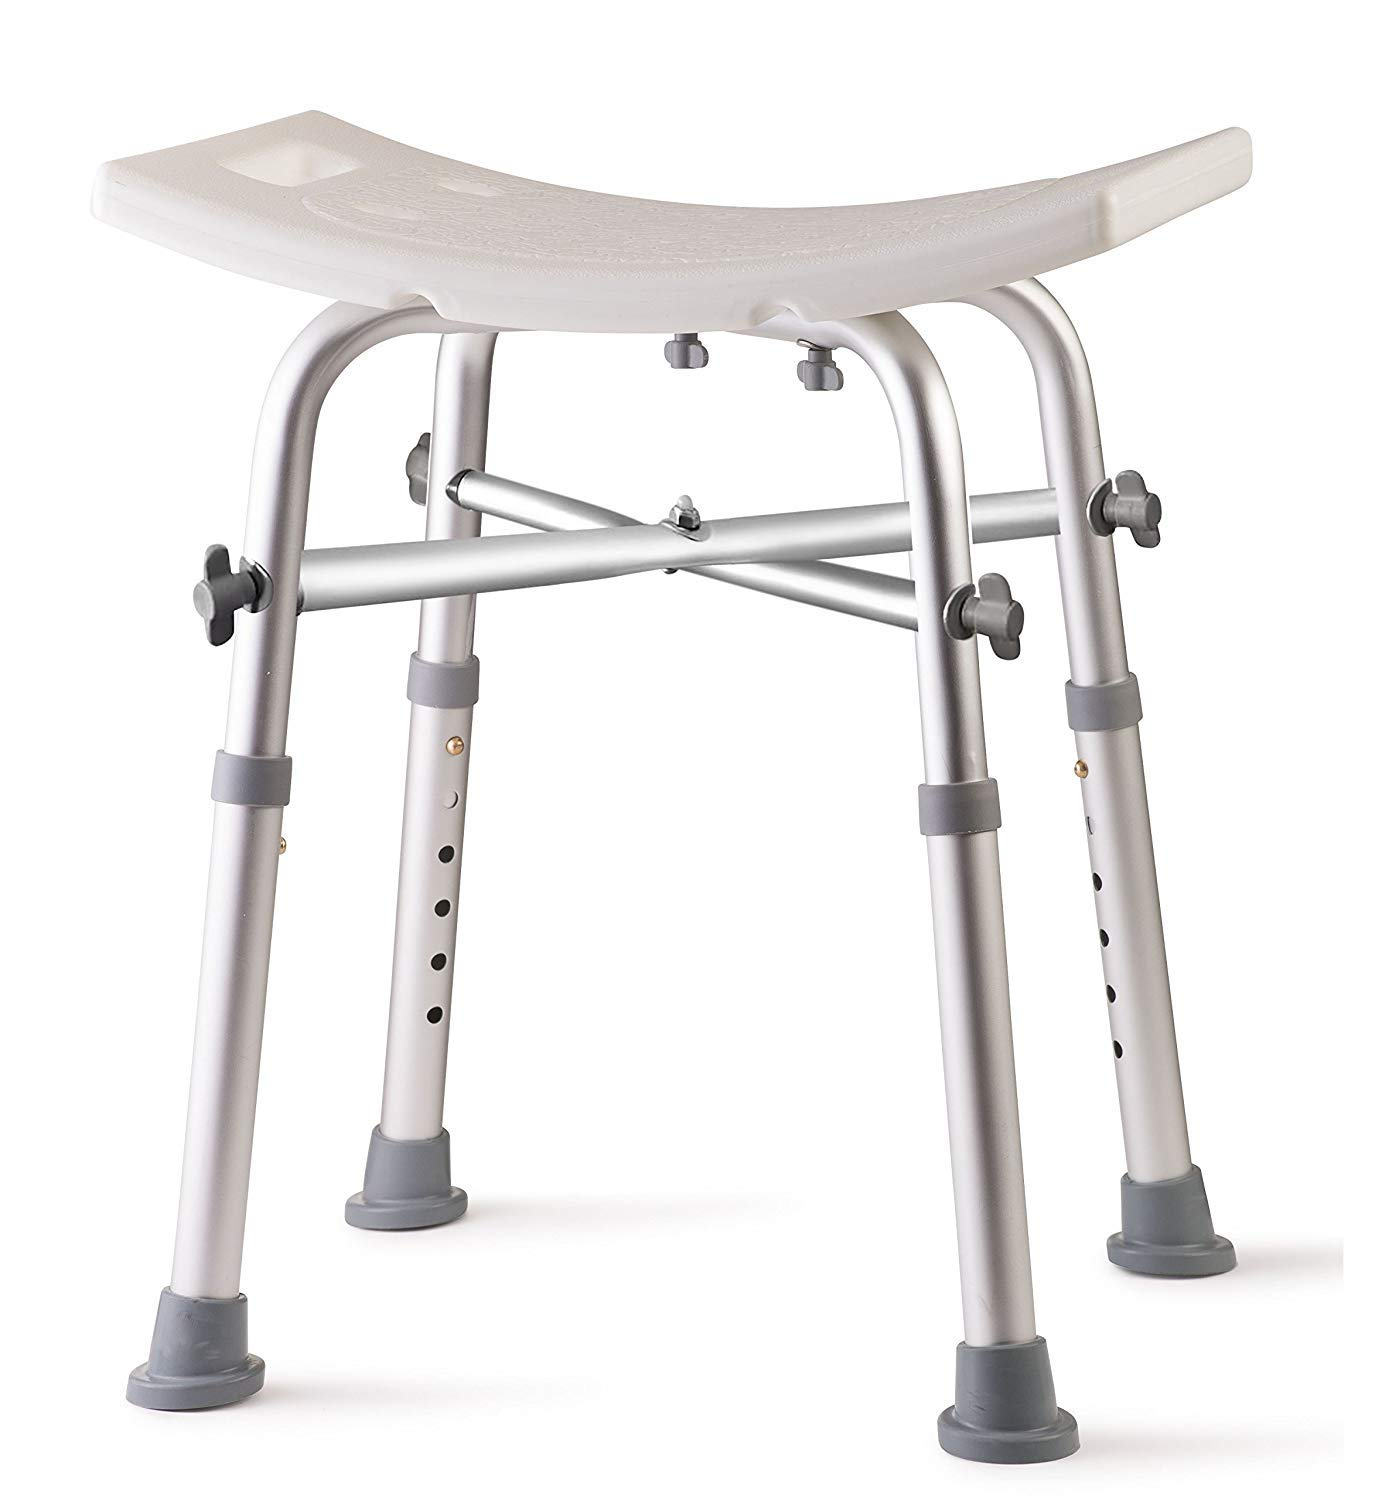 Dr Kay's Adjustable Height Bath and Shower Chair Top Rated Shower Bench by Dr Kay's